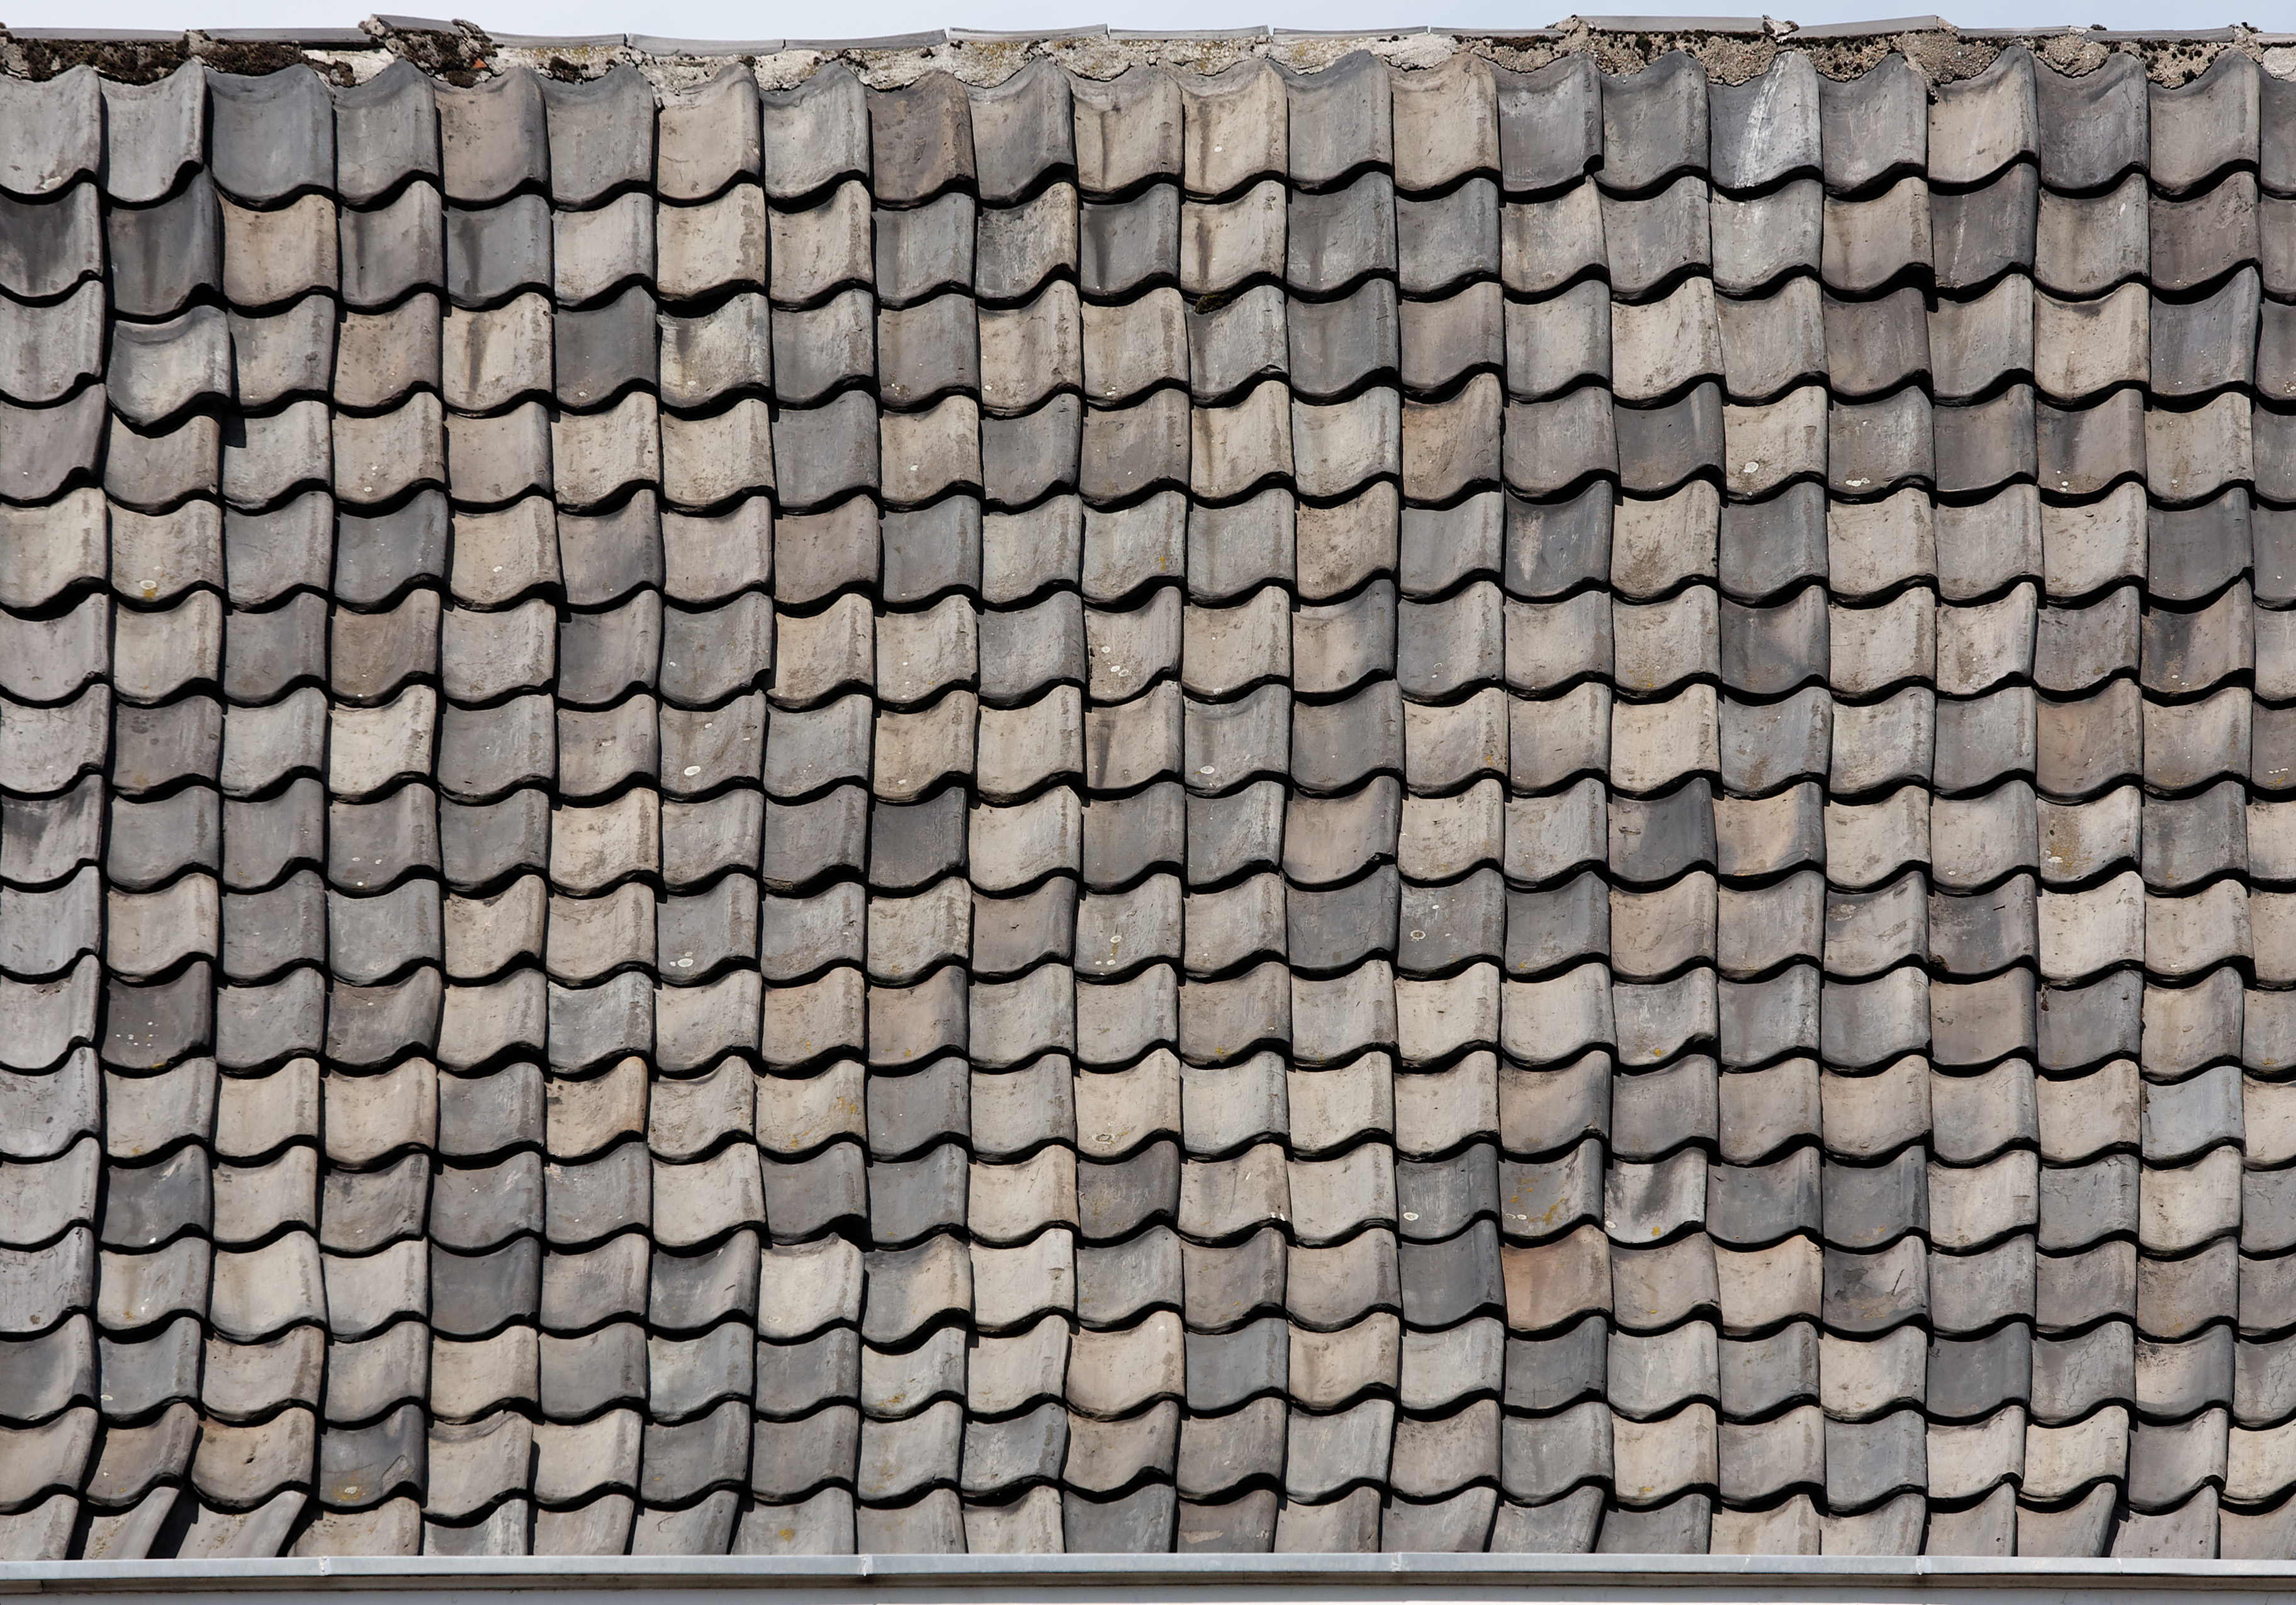 Roof Tile Pictures to pin on Pinterest